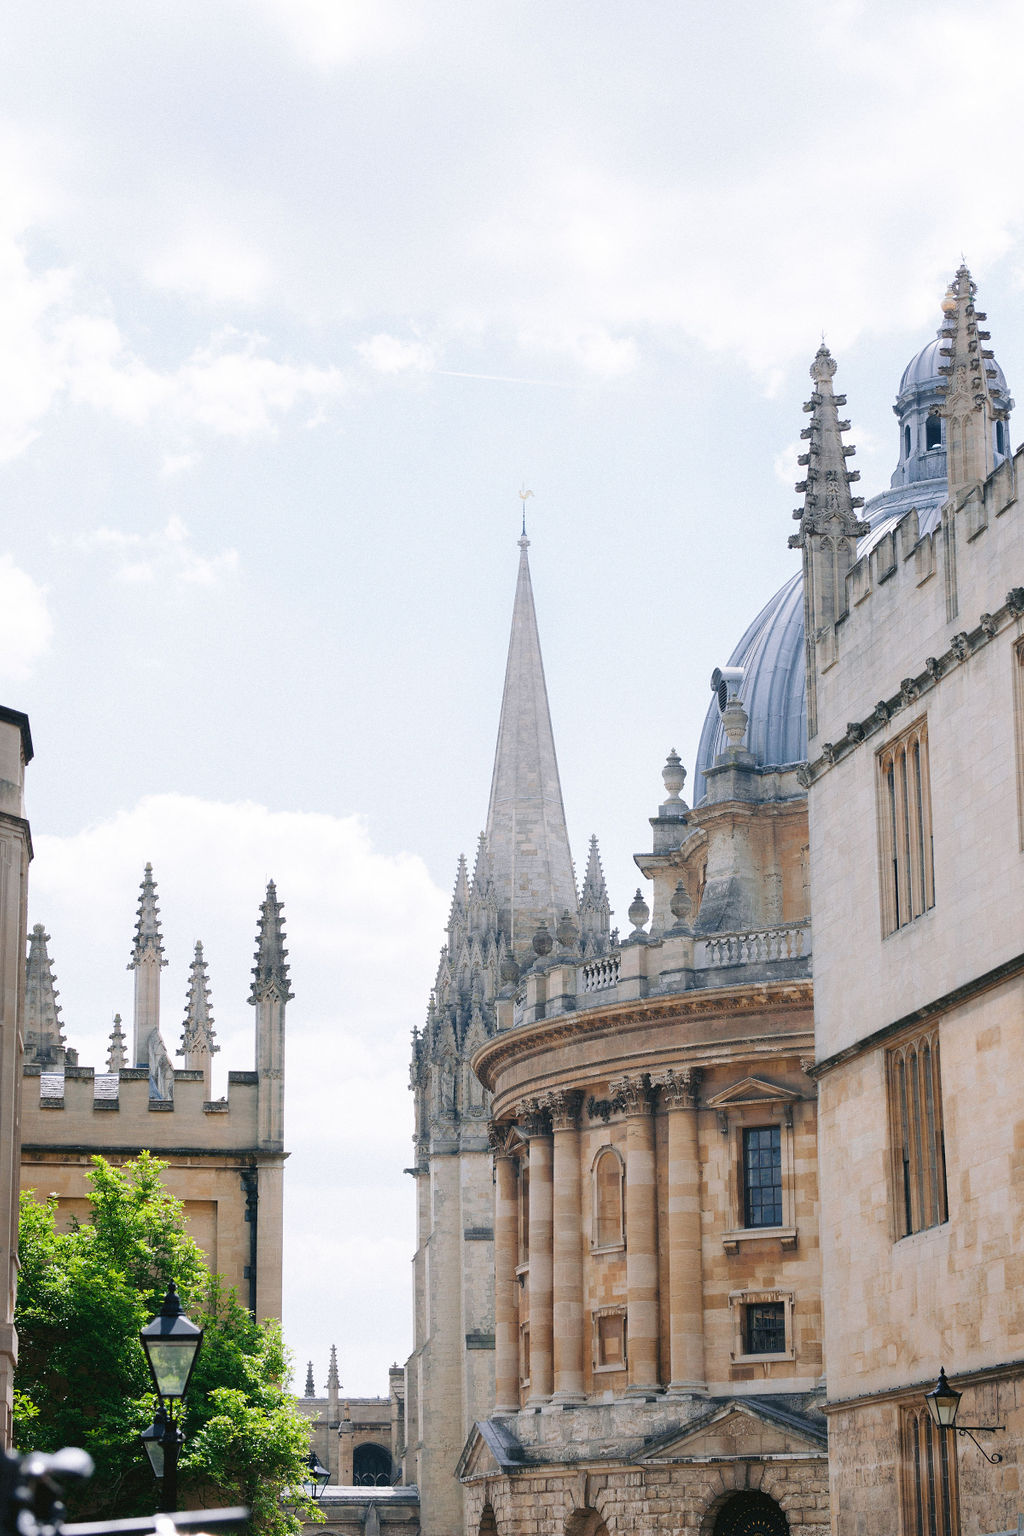 Getting married in Oxford